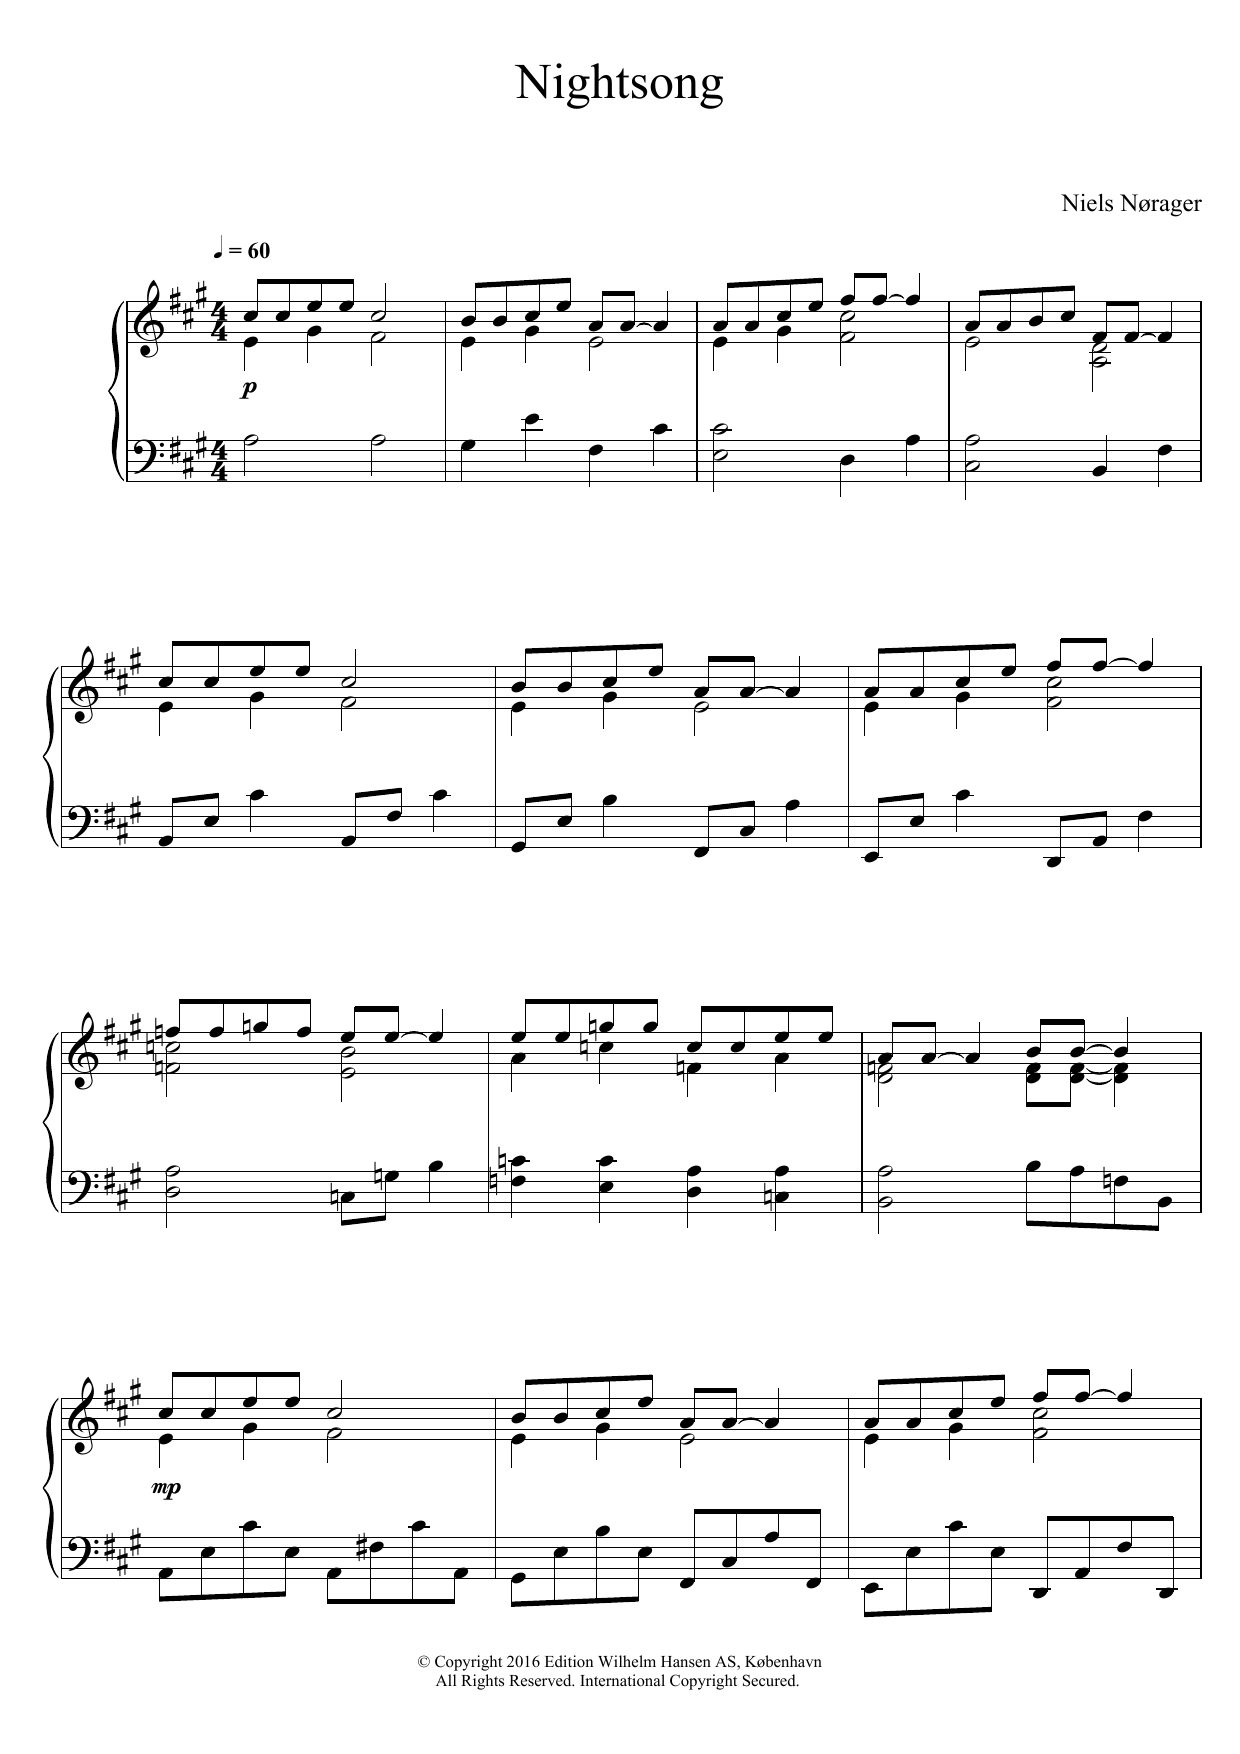 Niels Nørager Nightsong sheet music notes and chords. Download Printable PDF.